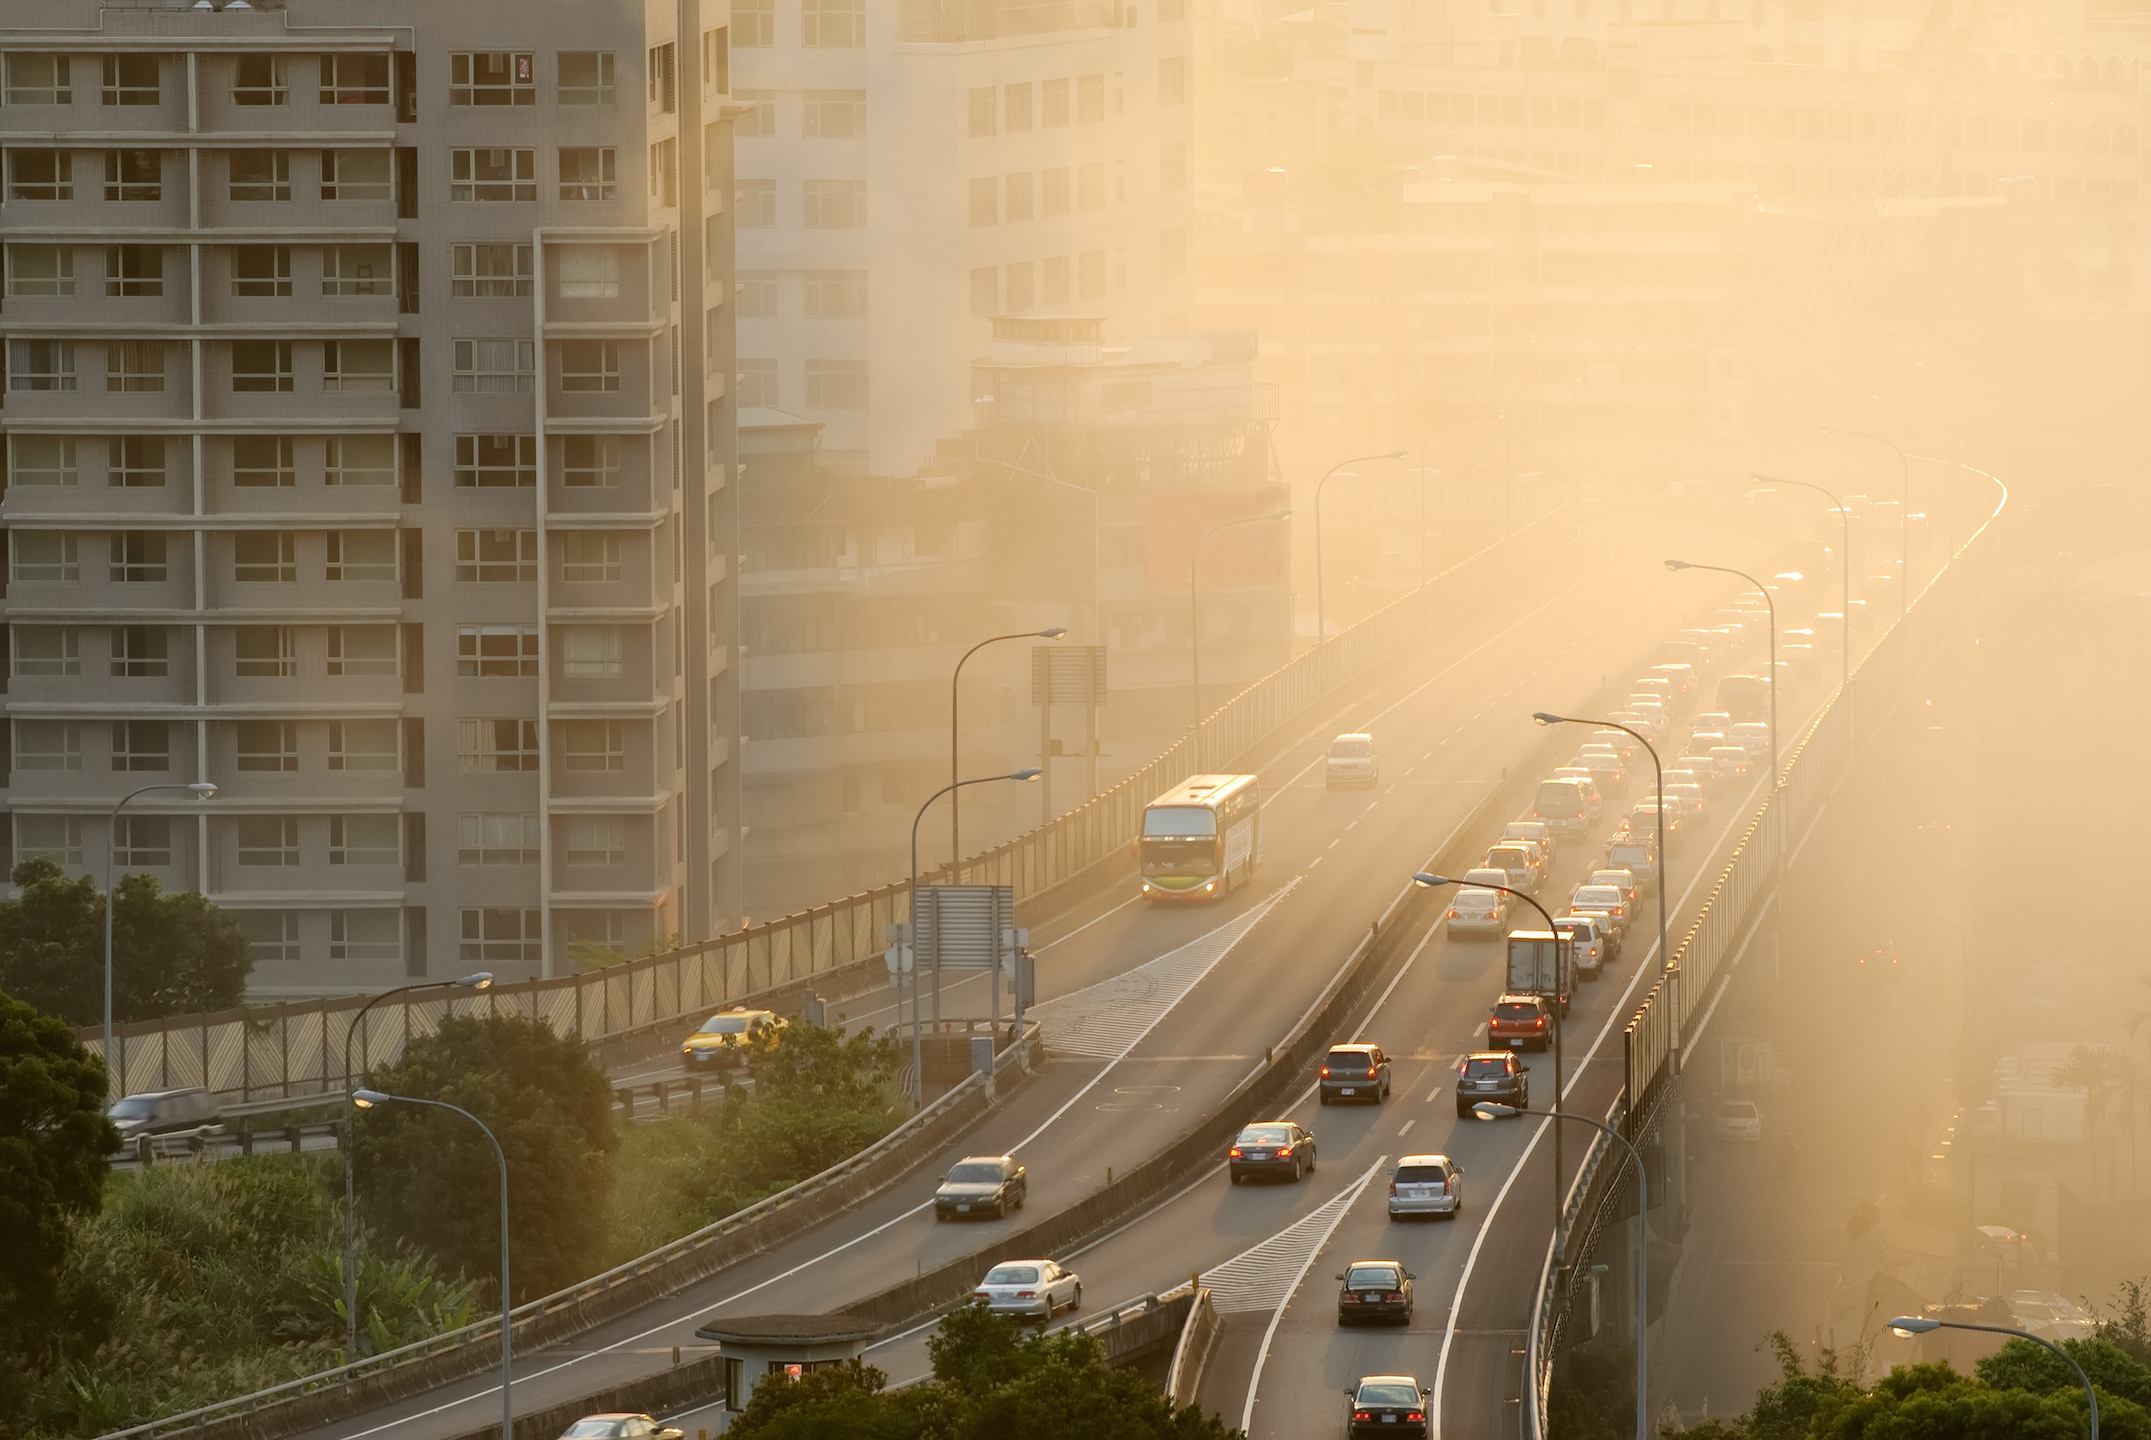 New findings indicate that exposure to air pollution may lead to unethical behavior such as crime and cheating.